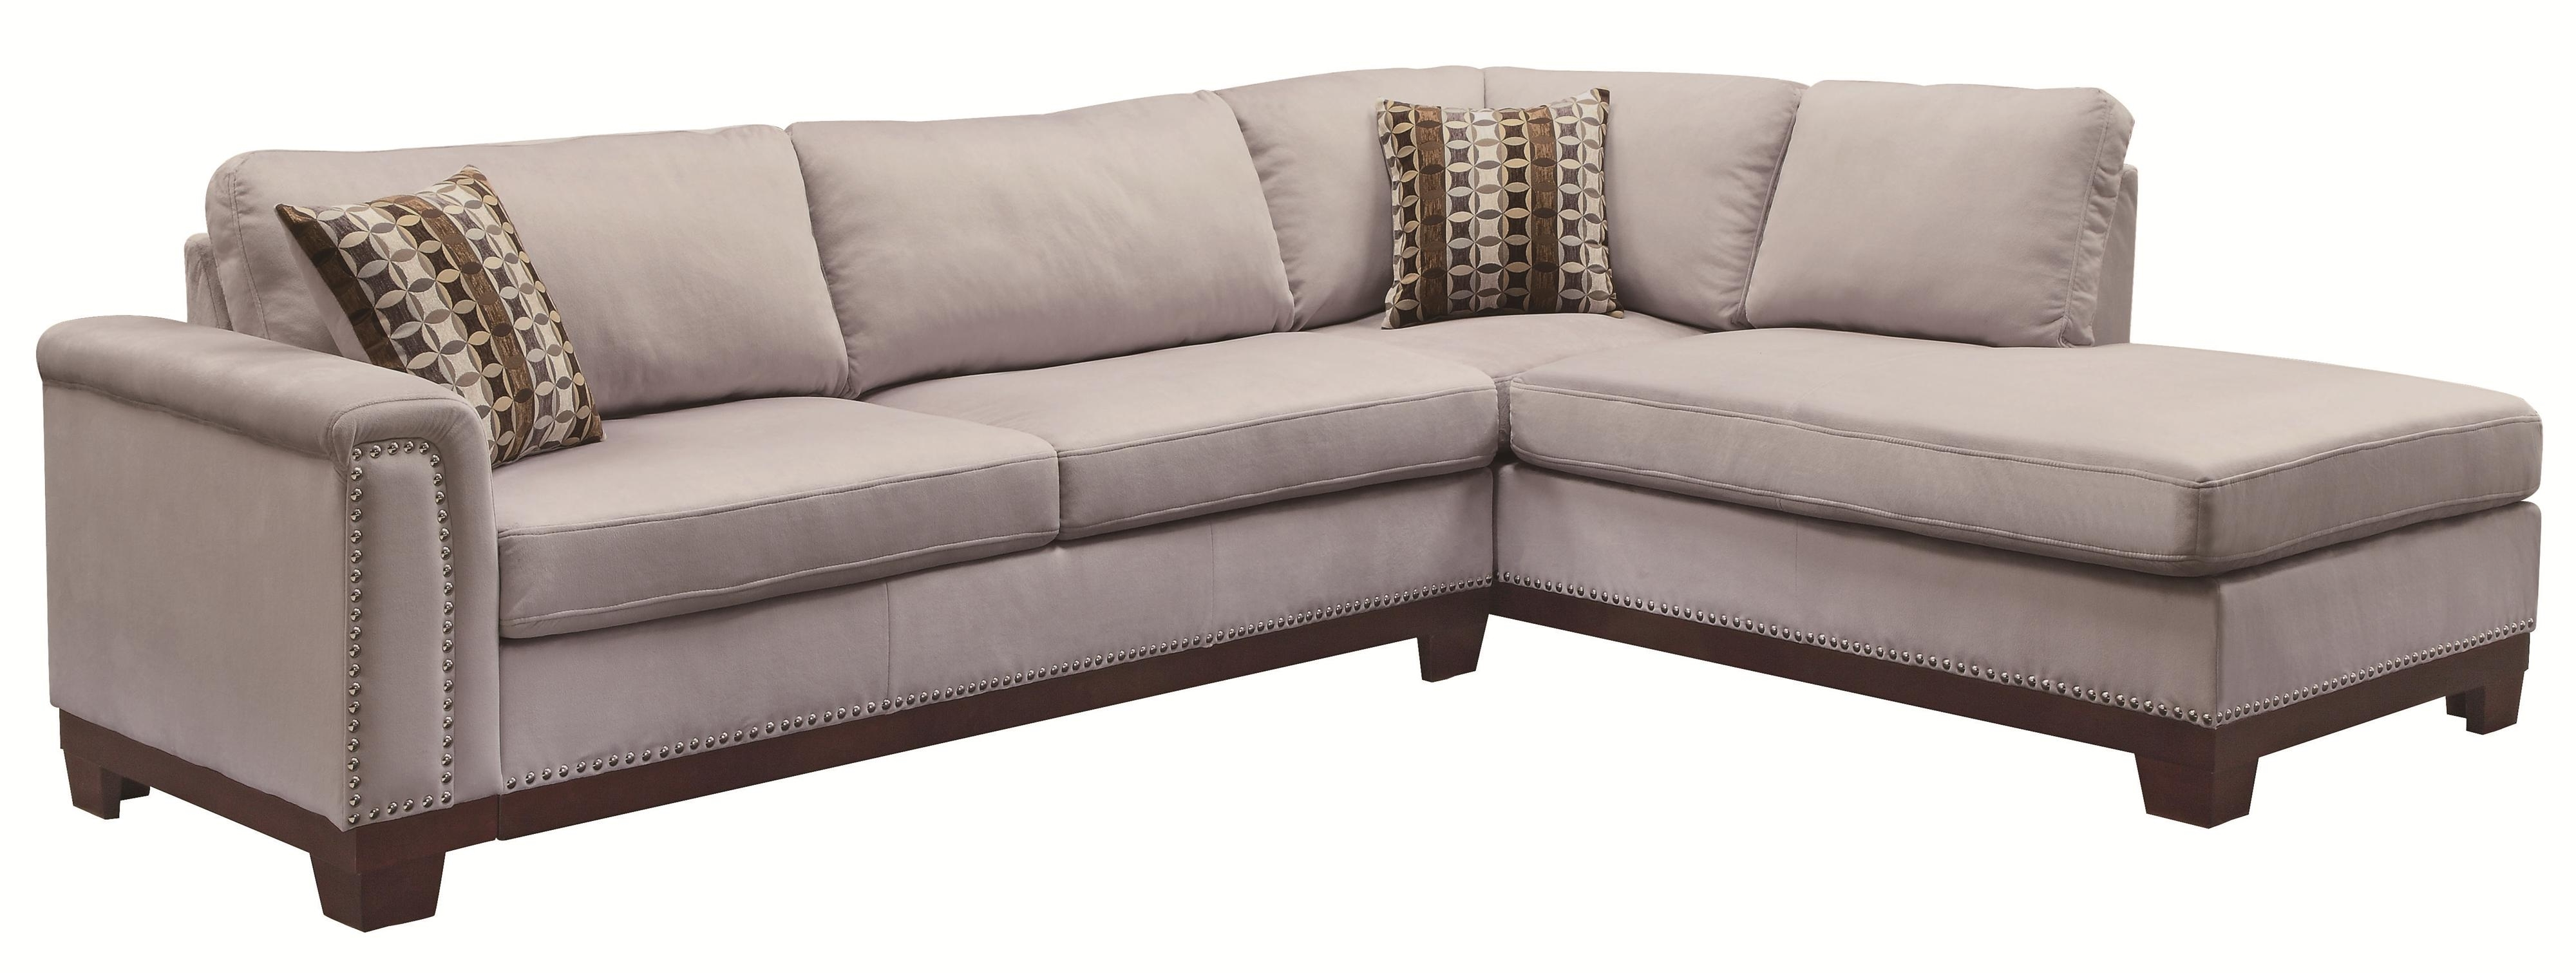 Value Pertaining To Trendy Reversible Chaise Sectional Sofas (View 12 of 15)